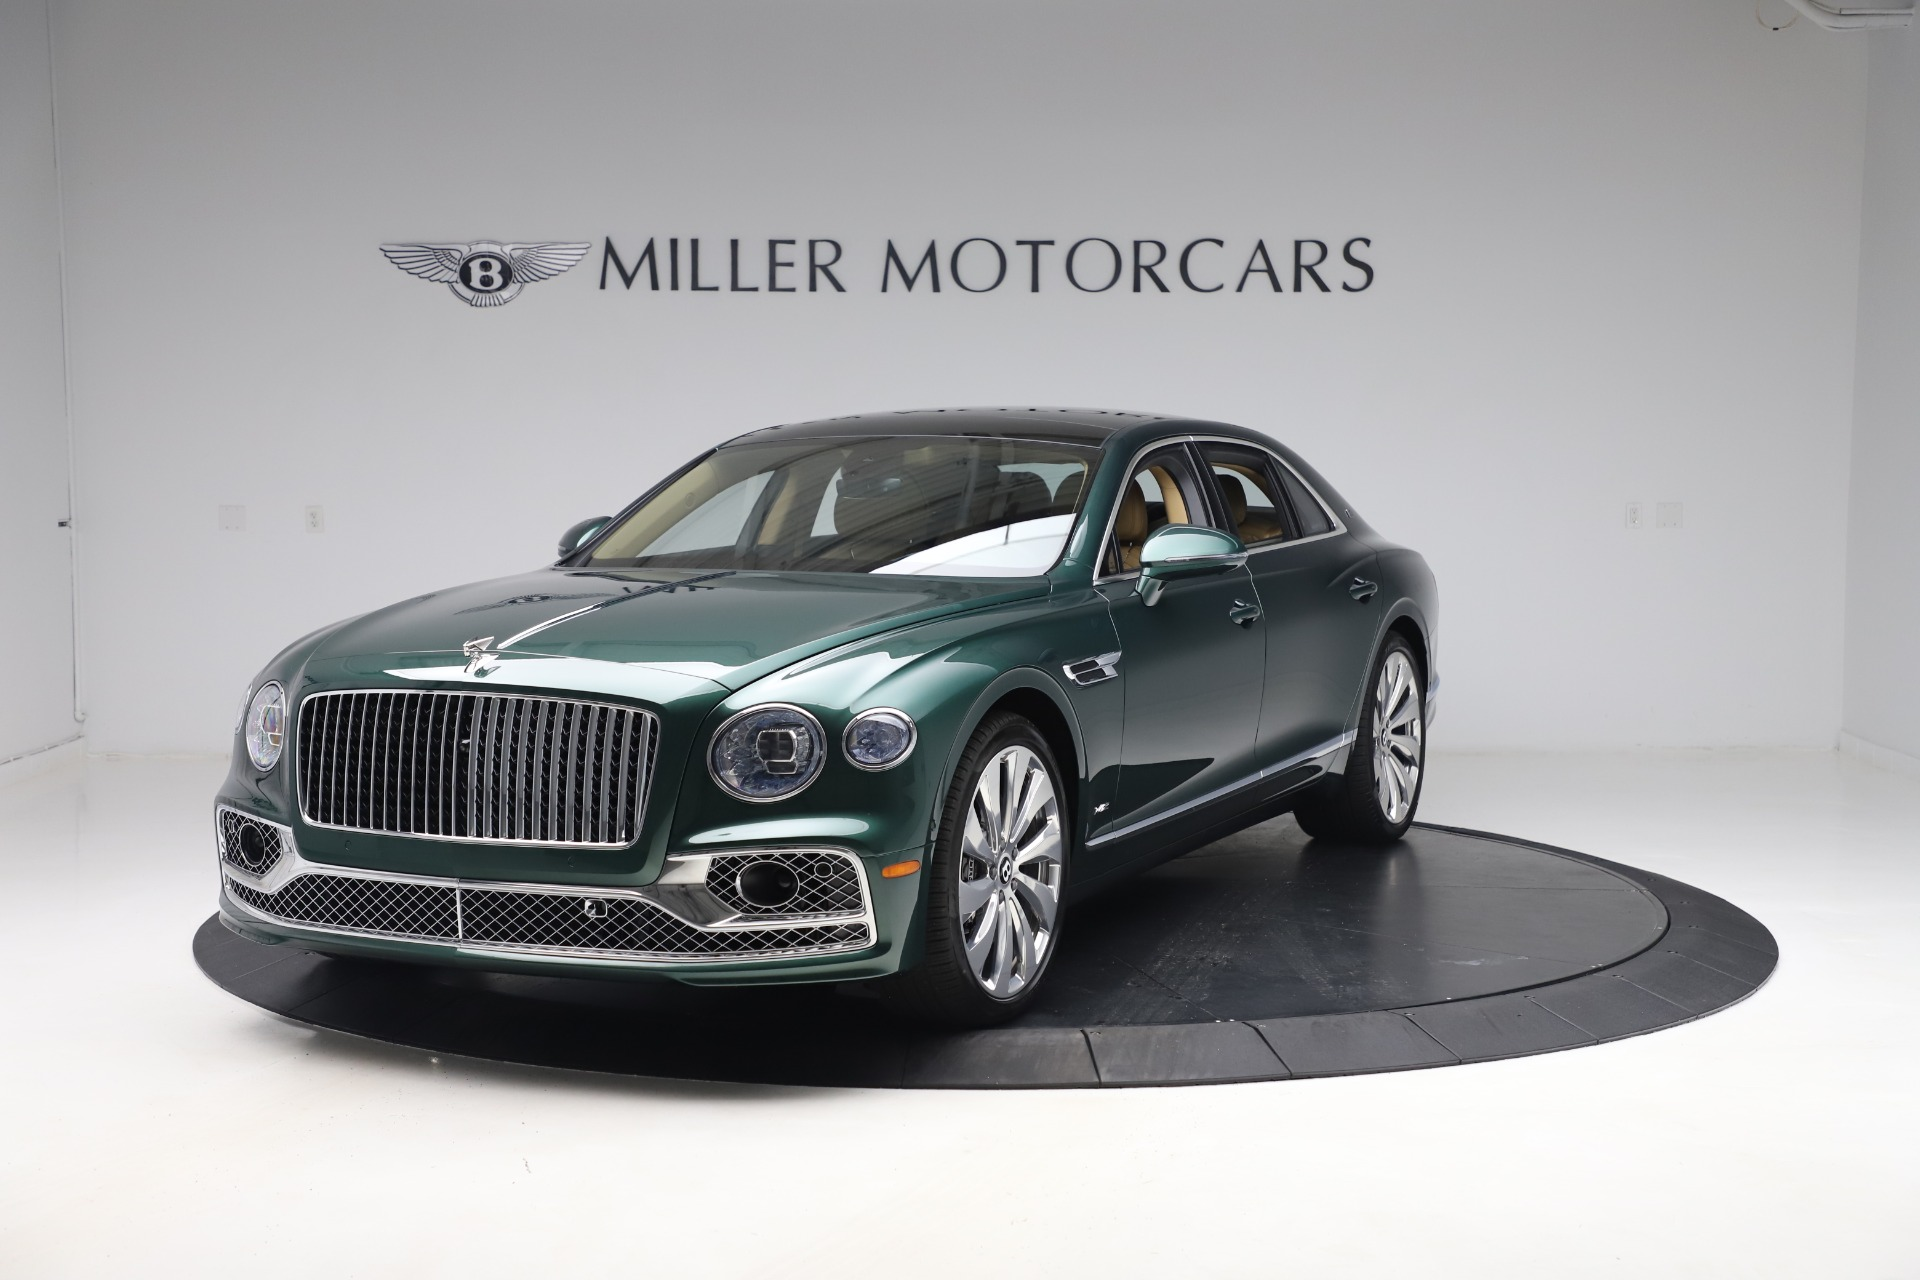 New 2020 Bentley Flying Spur W12 First Edition for sale $281,050 at Bentley Greenwich in Greenwich CT 06830 1